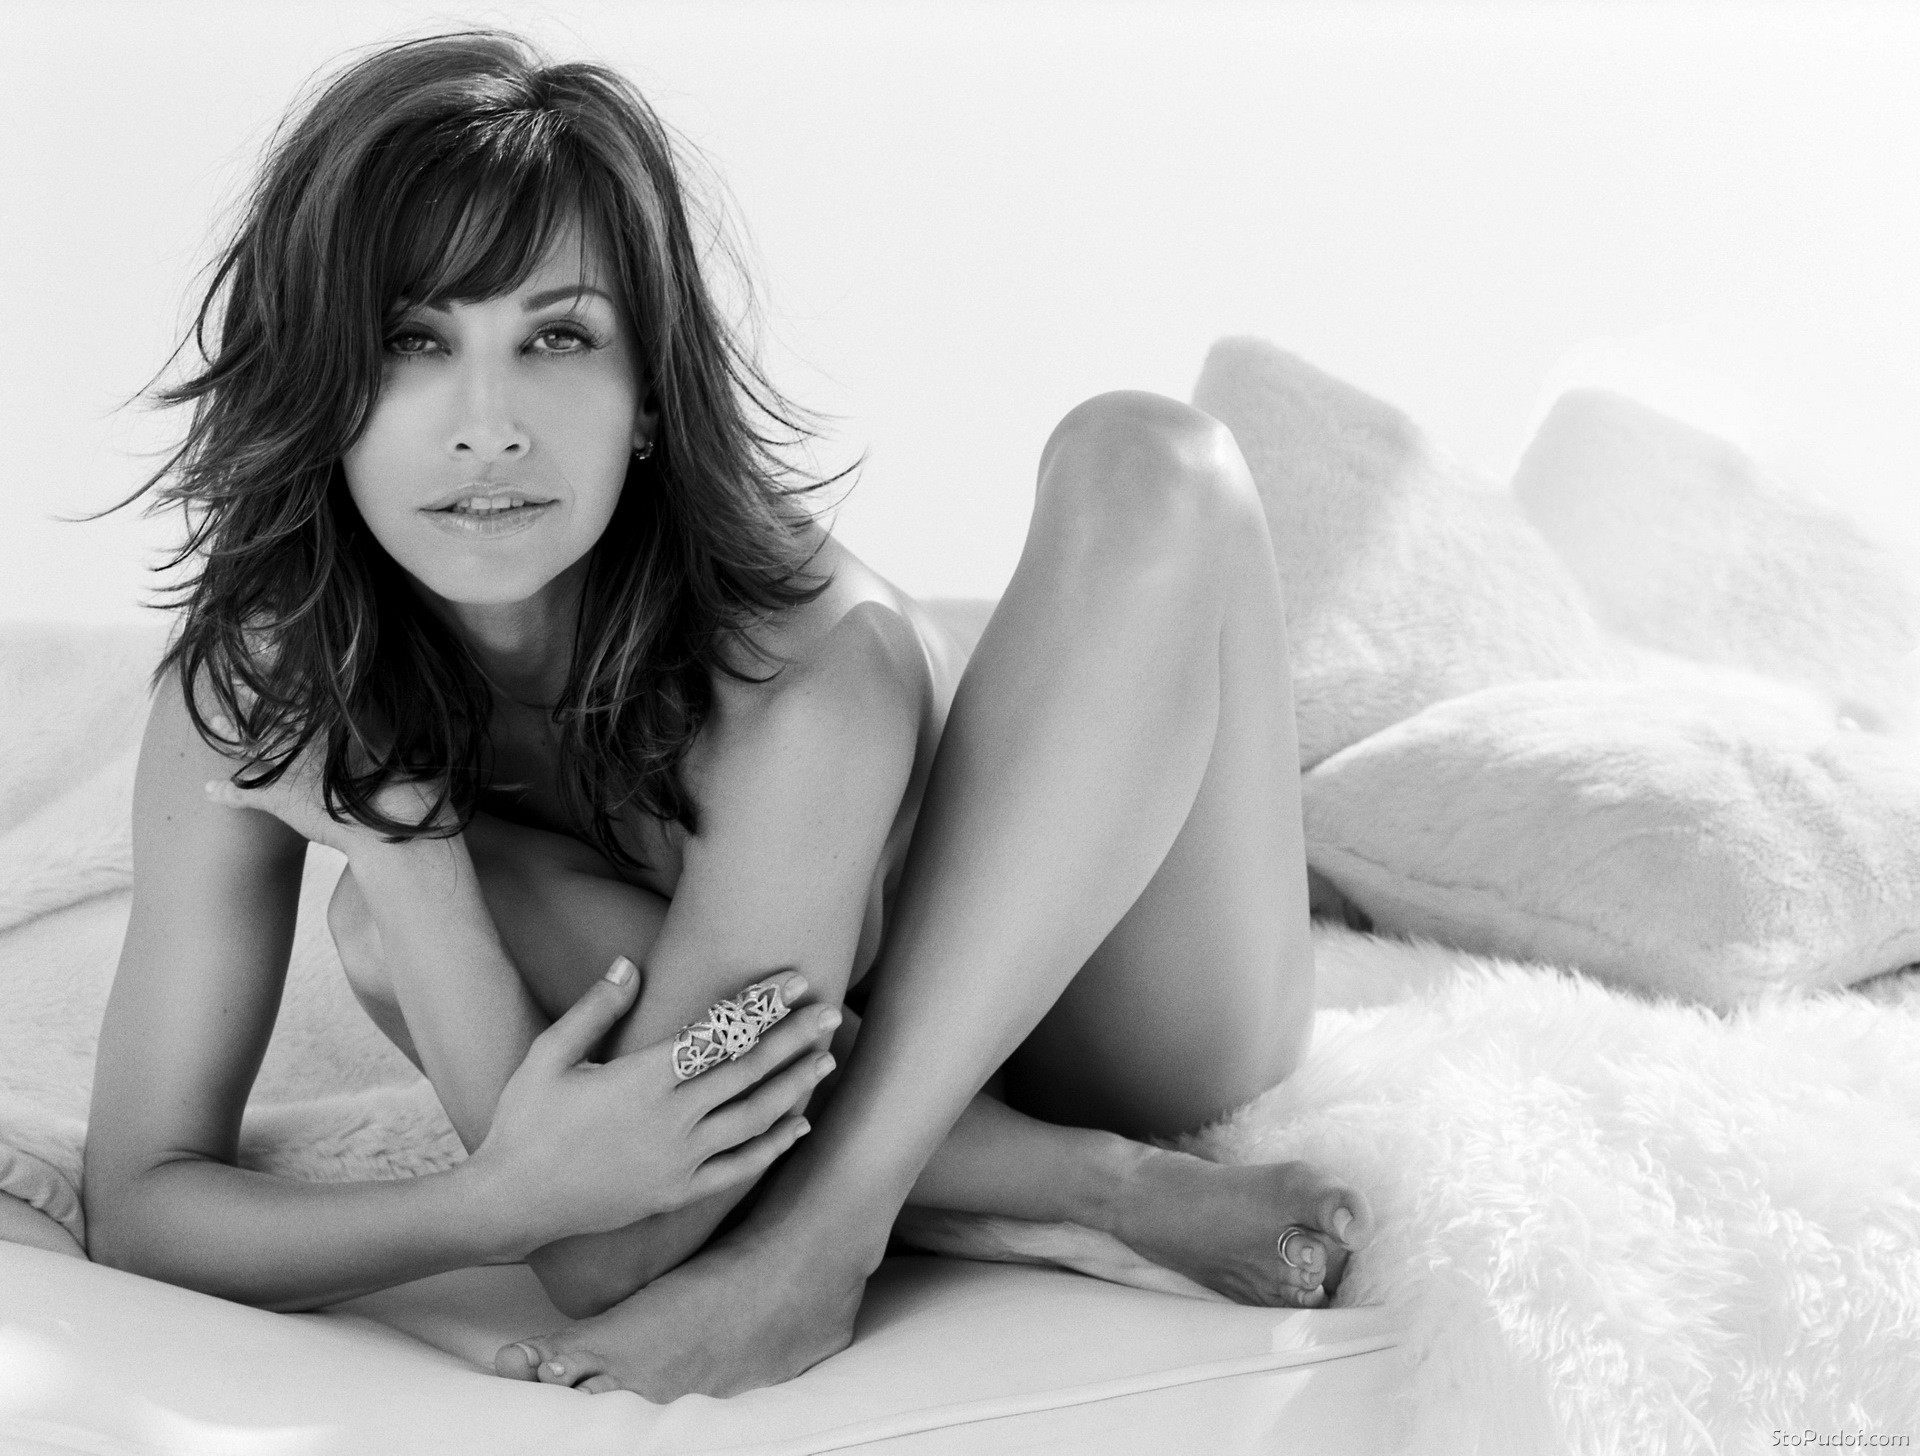 nude hacked pictures of Gina Gershon - UkPhotoSafari